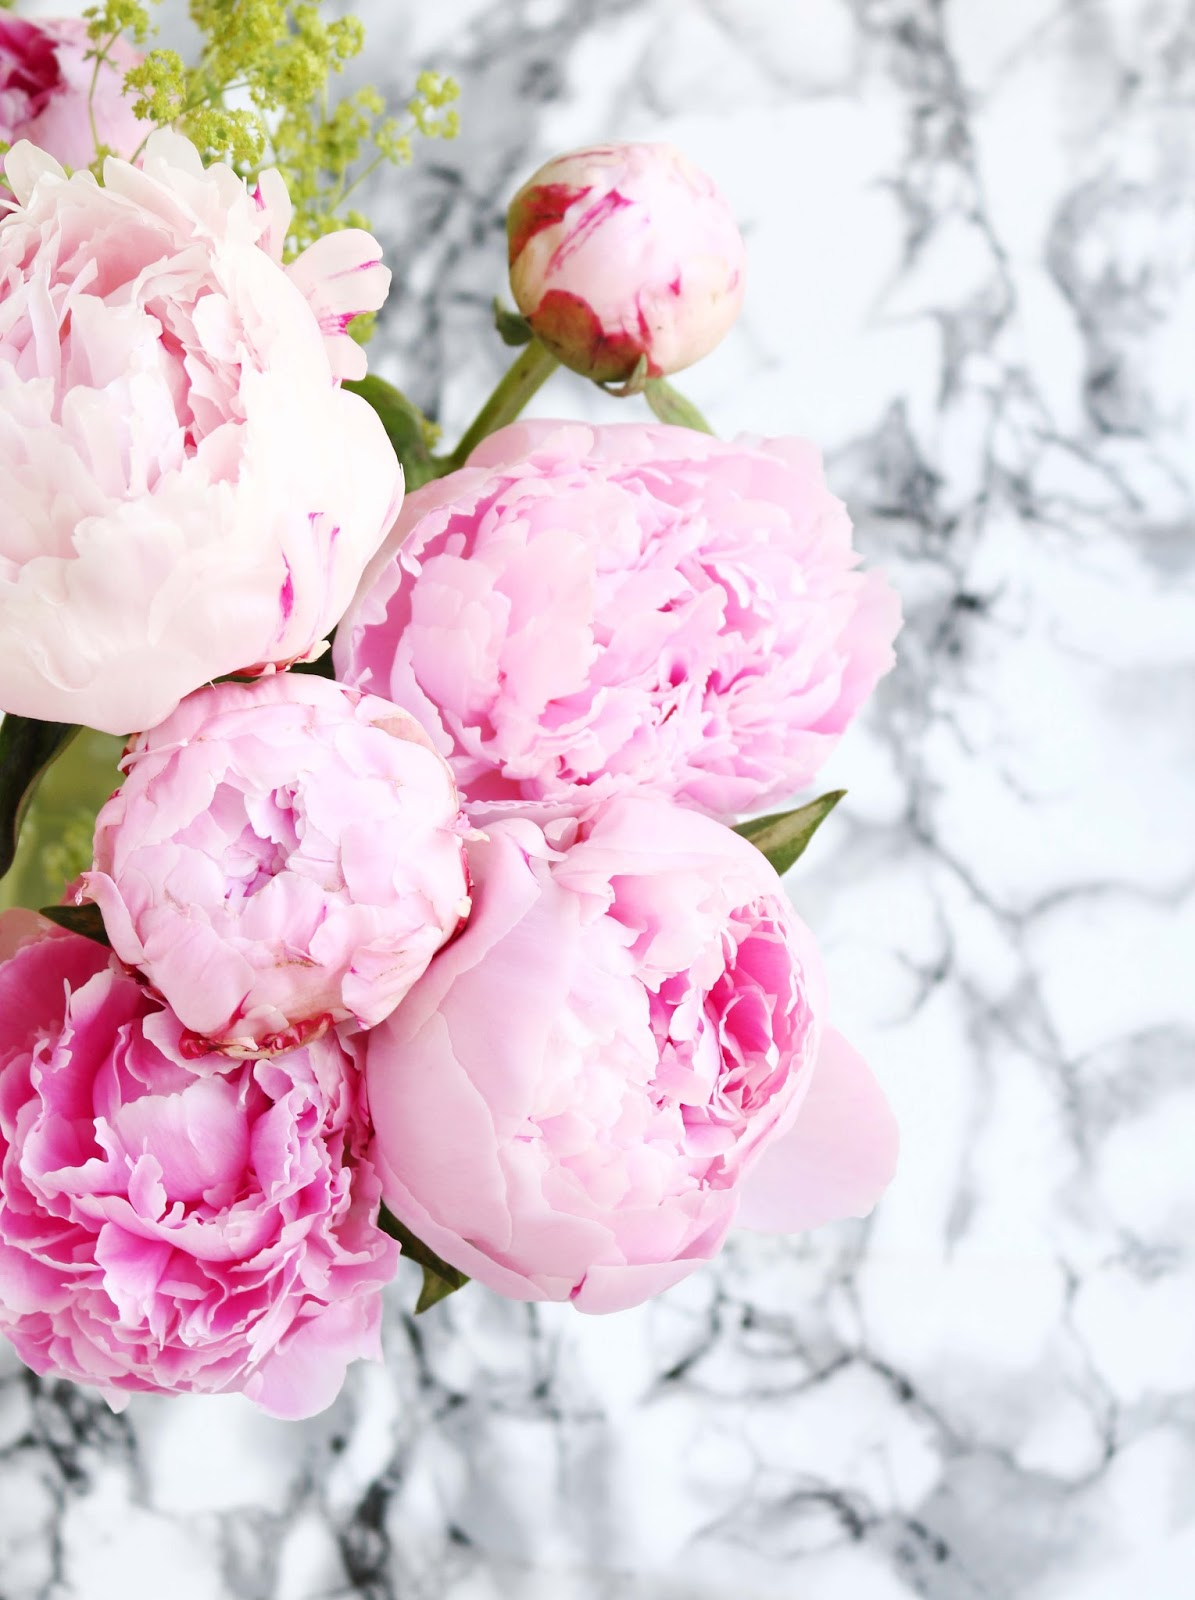 Lifestyle, lists, Summer, catch up, Chatty, peonies, things im looking forward to in June, June goals, peony, dizzybrunette3